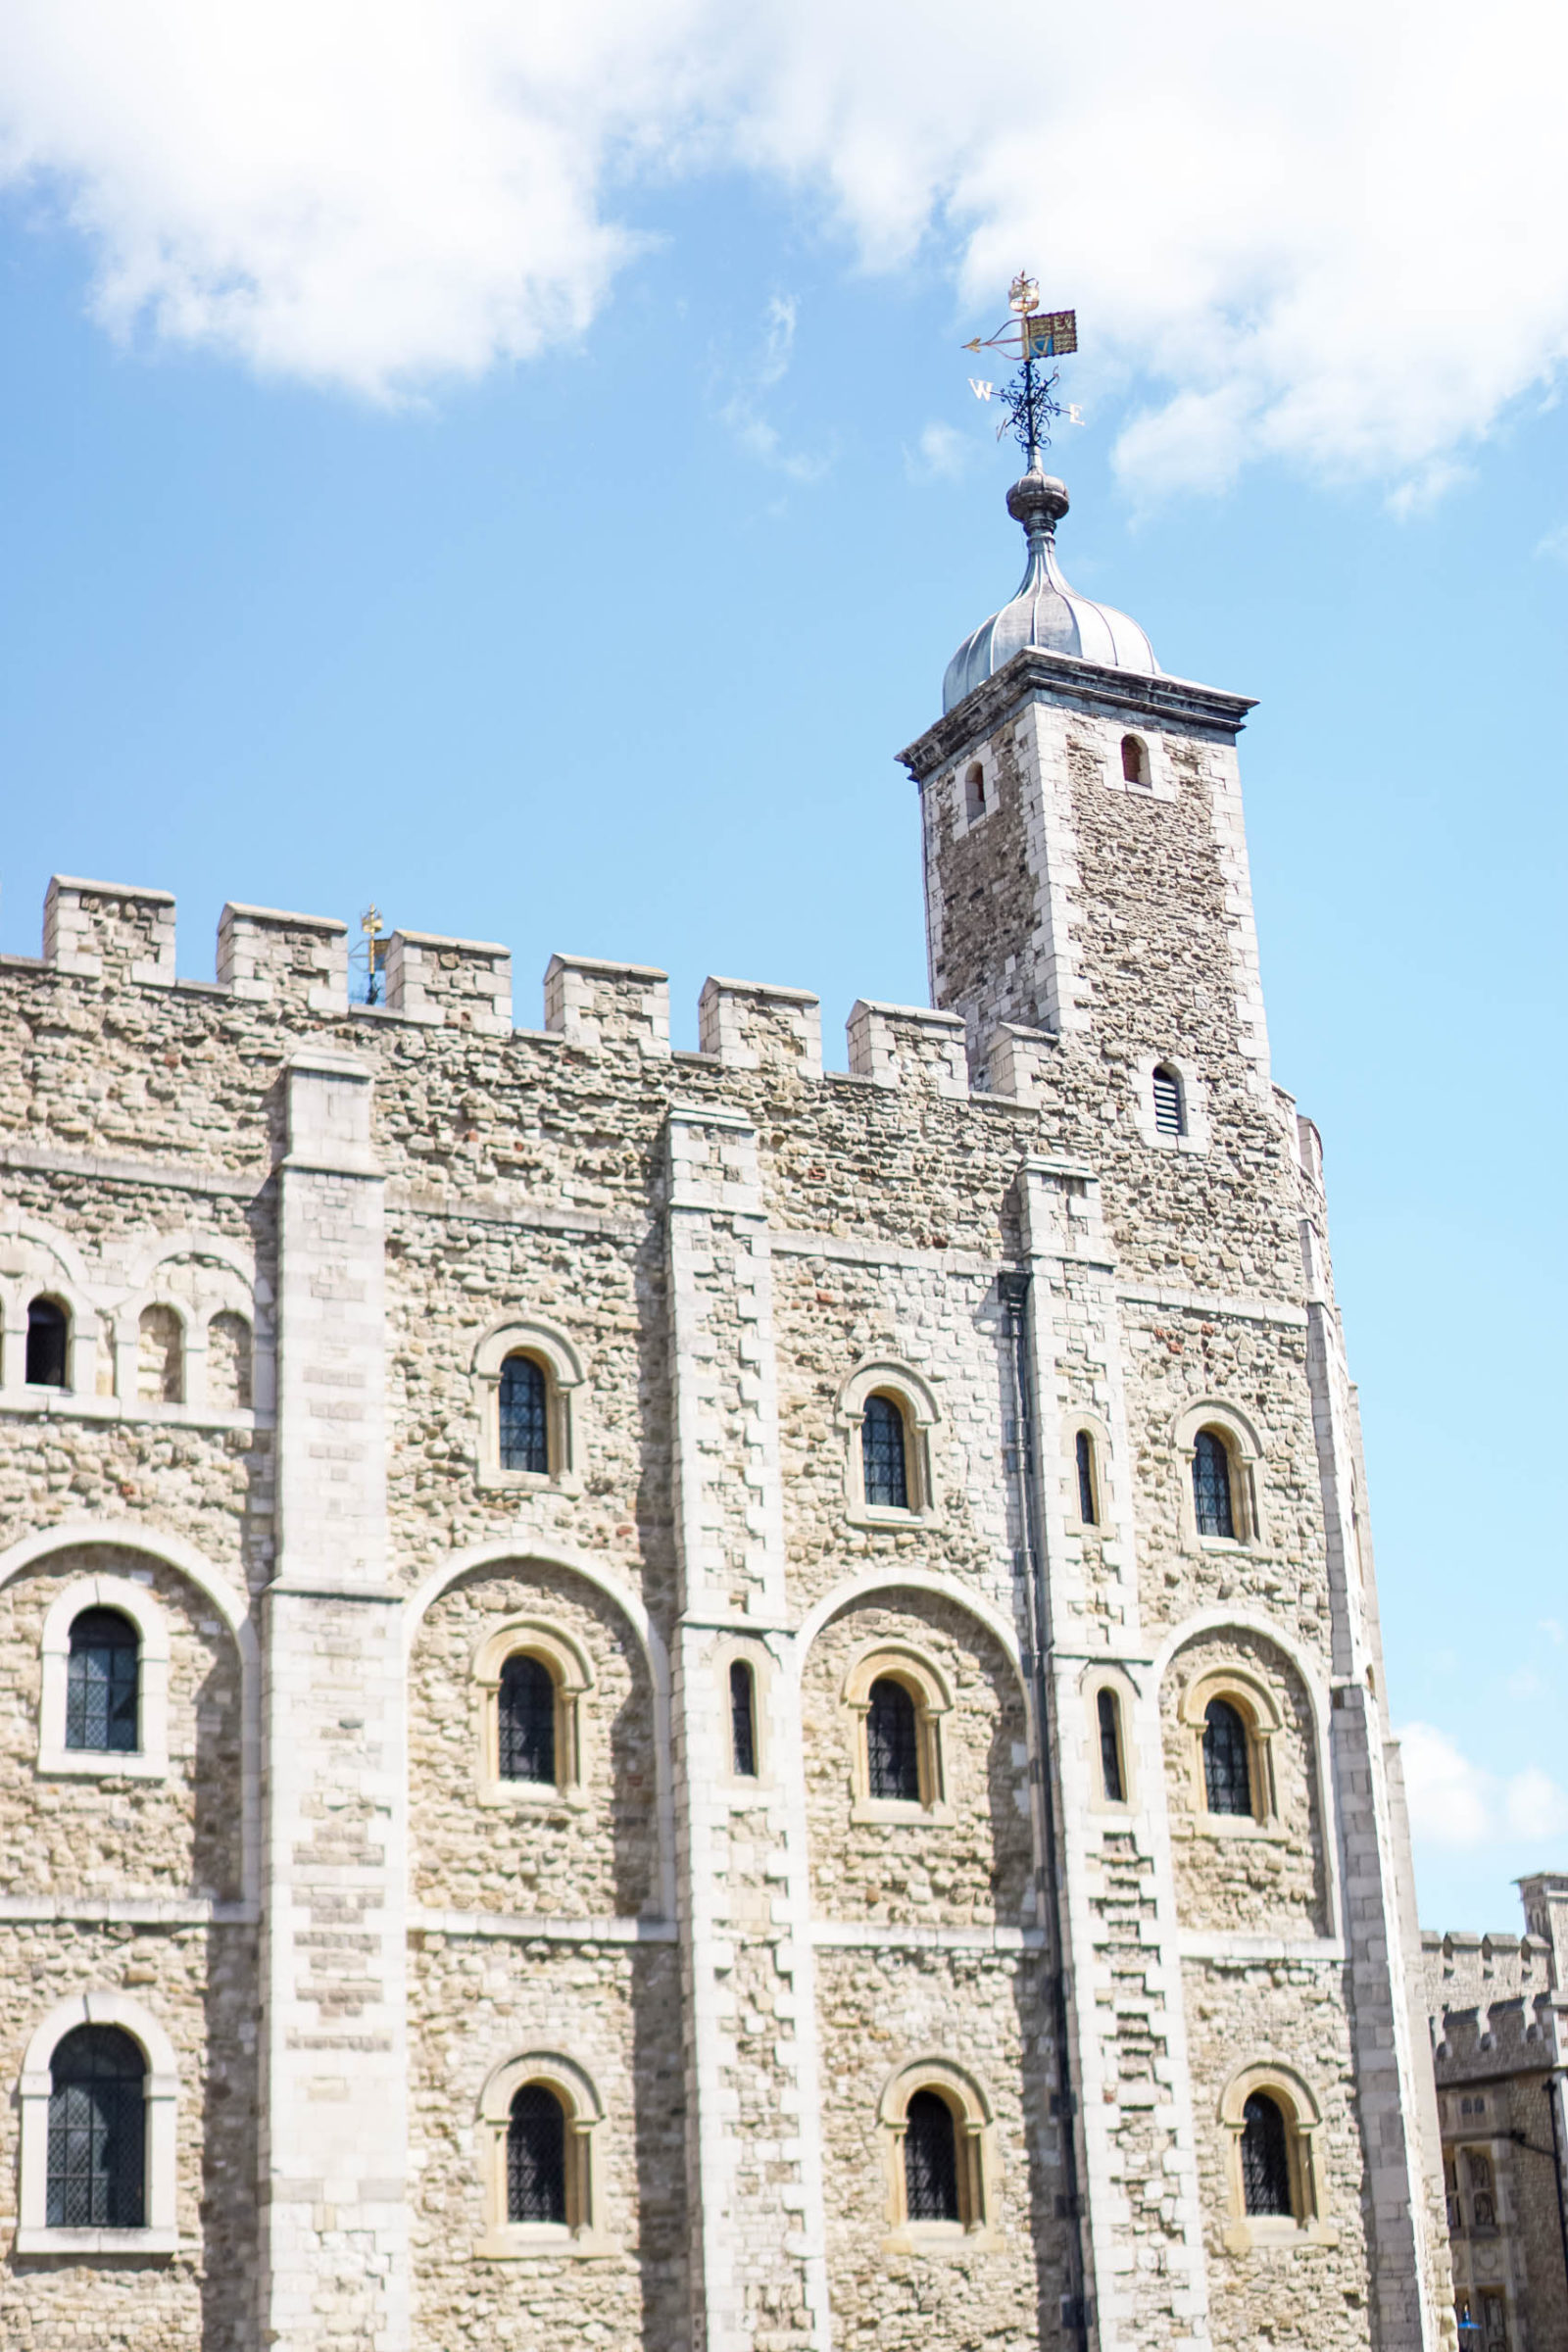 Things to do in London: Tower of London | Best Museums in London | Castles to Tour in London | Travel blogger shares her London Travel Guide